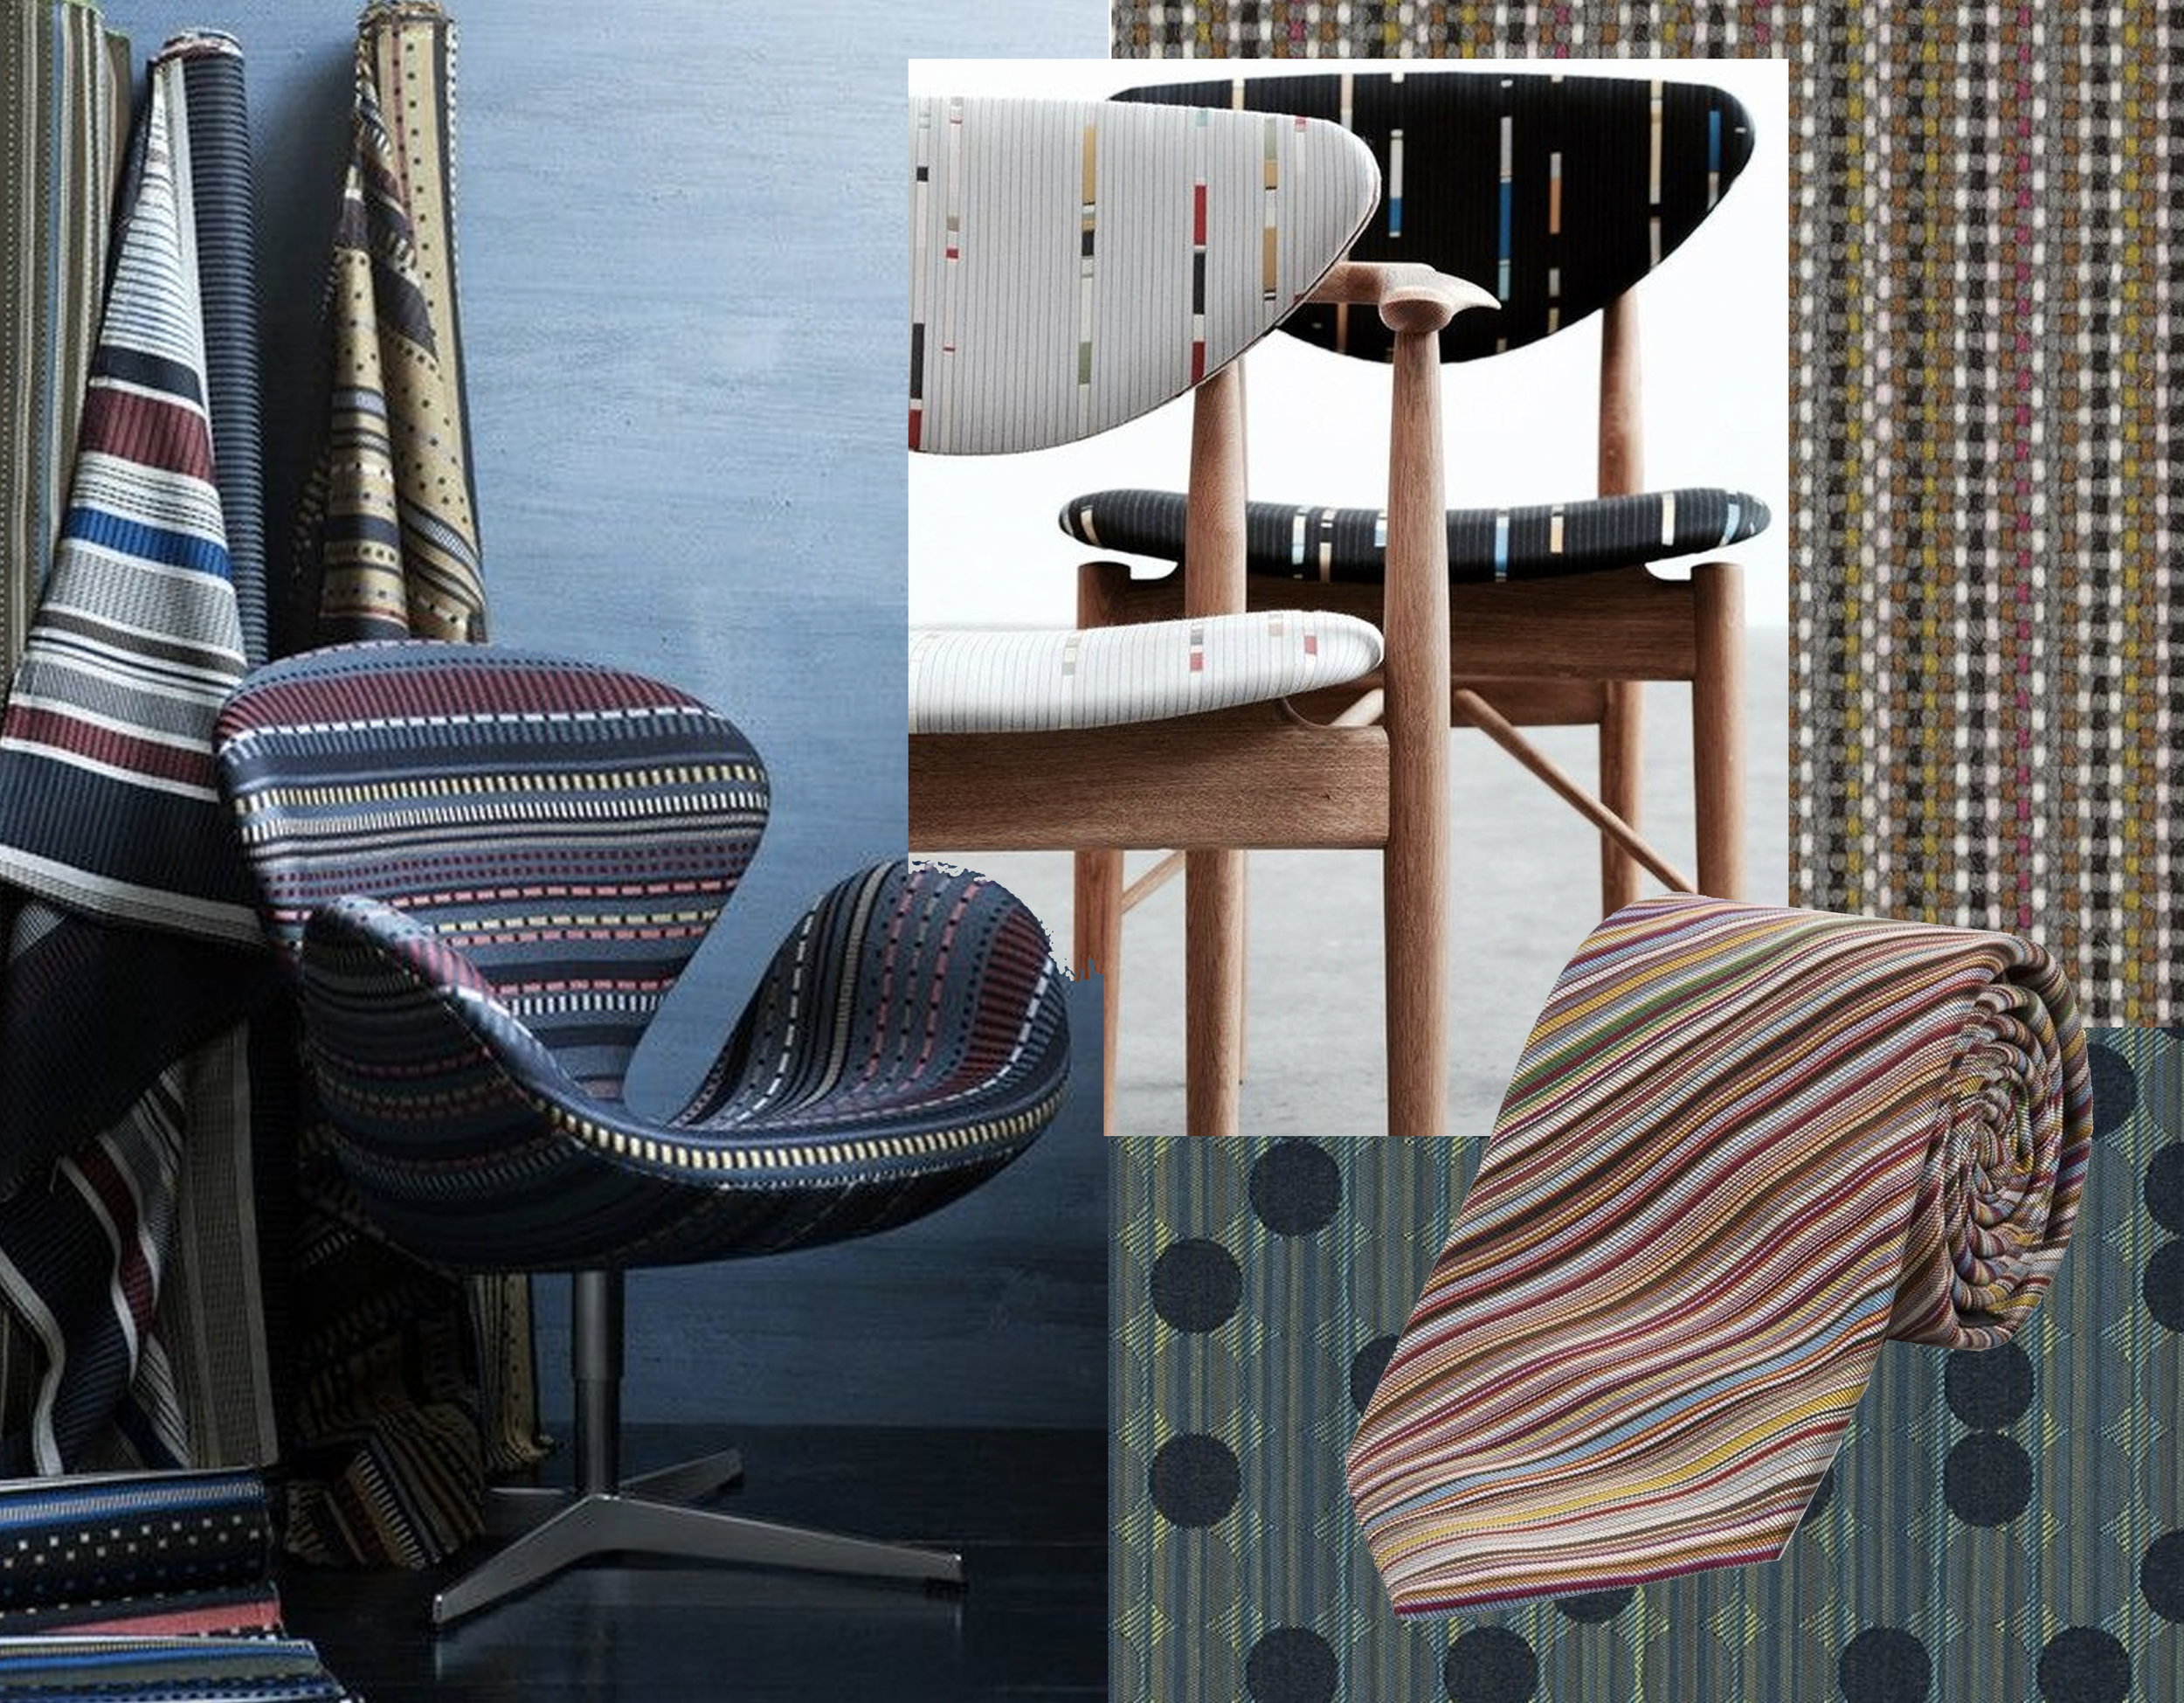 armchair and chair with fabrics Paul Smith for  Maharam  - tie  Paul Smith  - Coin fabric  Maharam